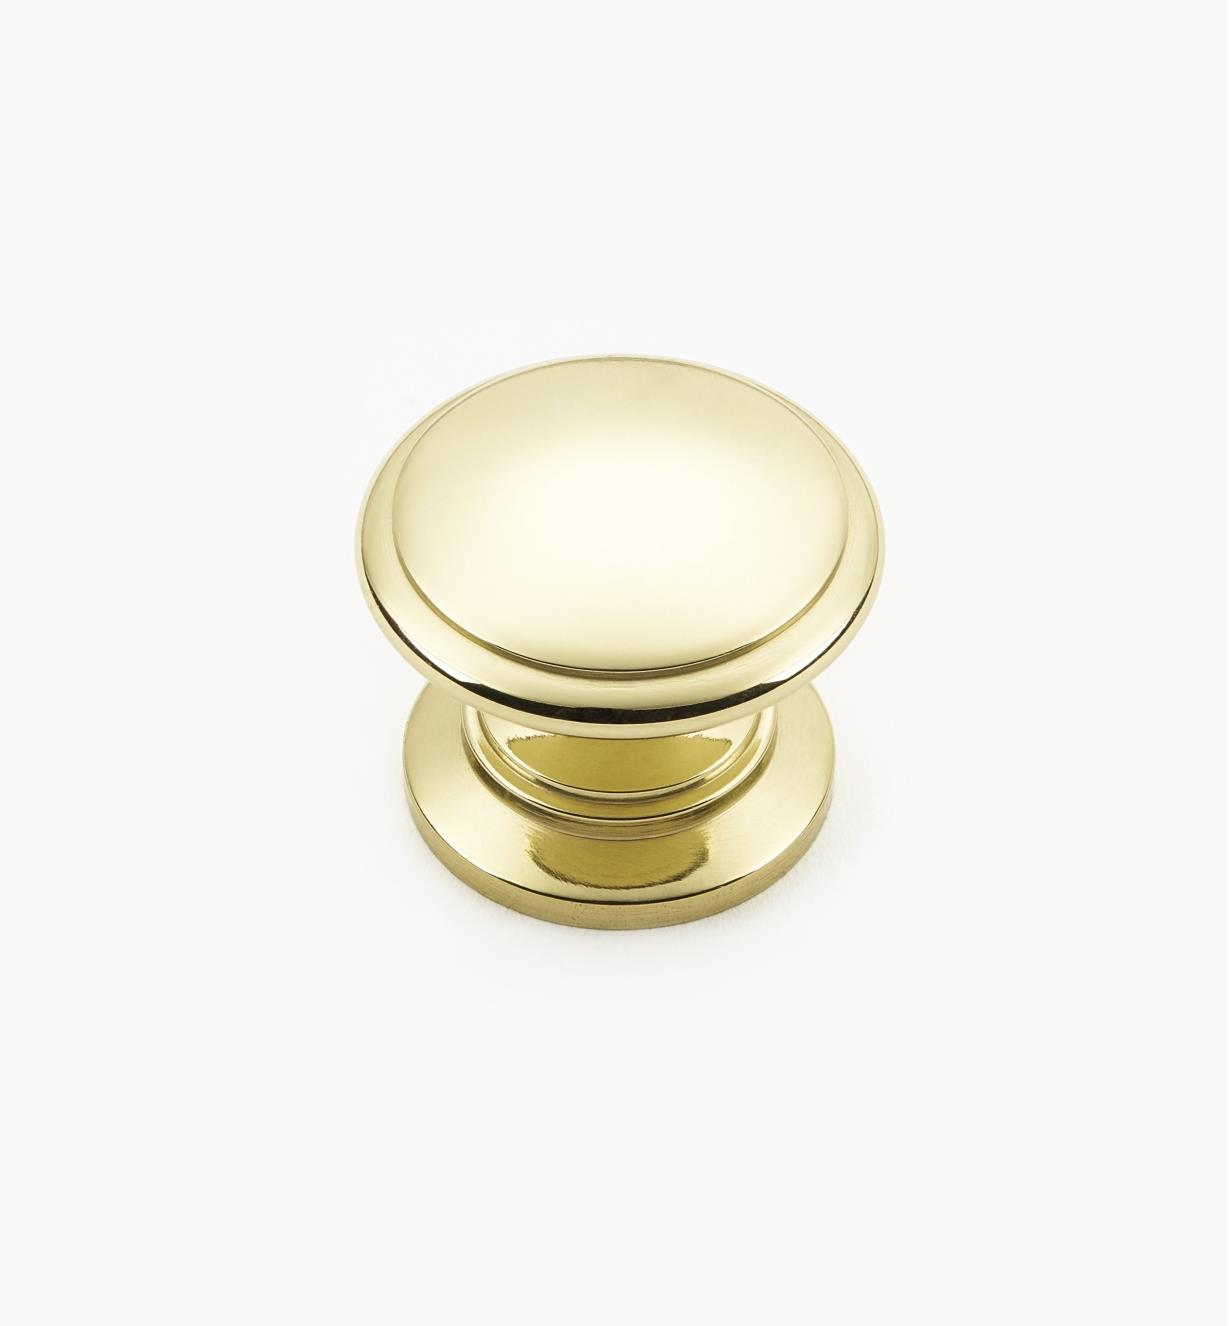 01W1344 - 31mm x 25mm Brass Knob